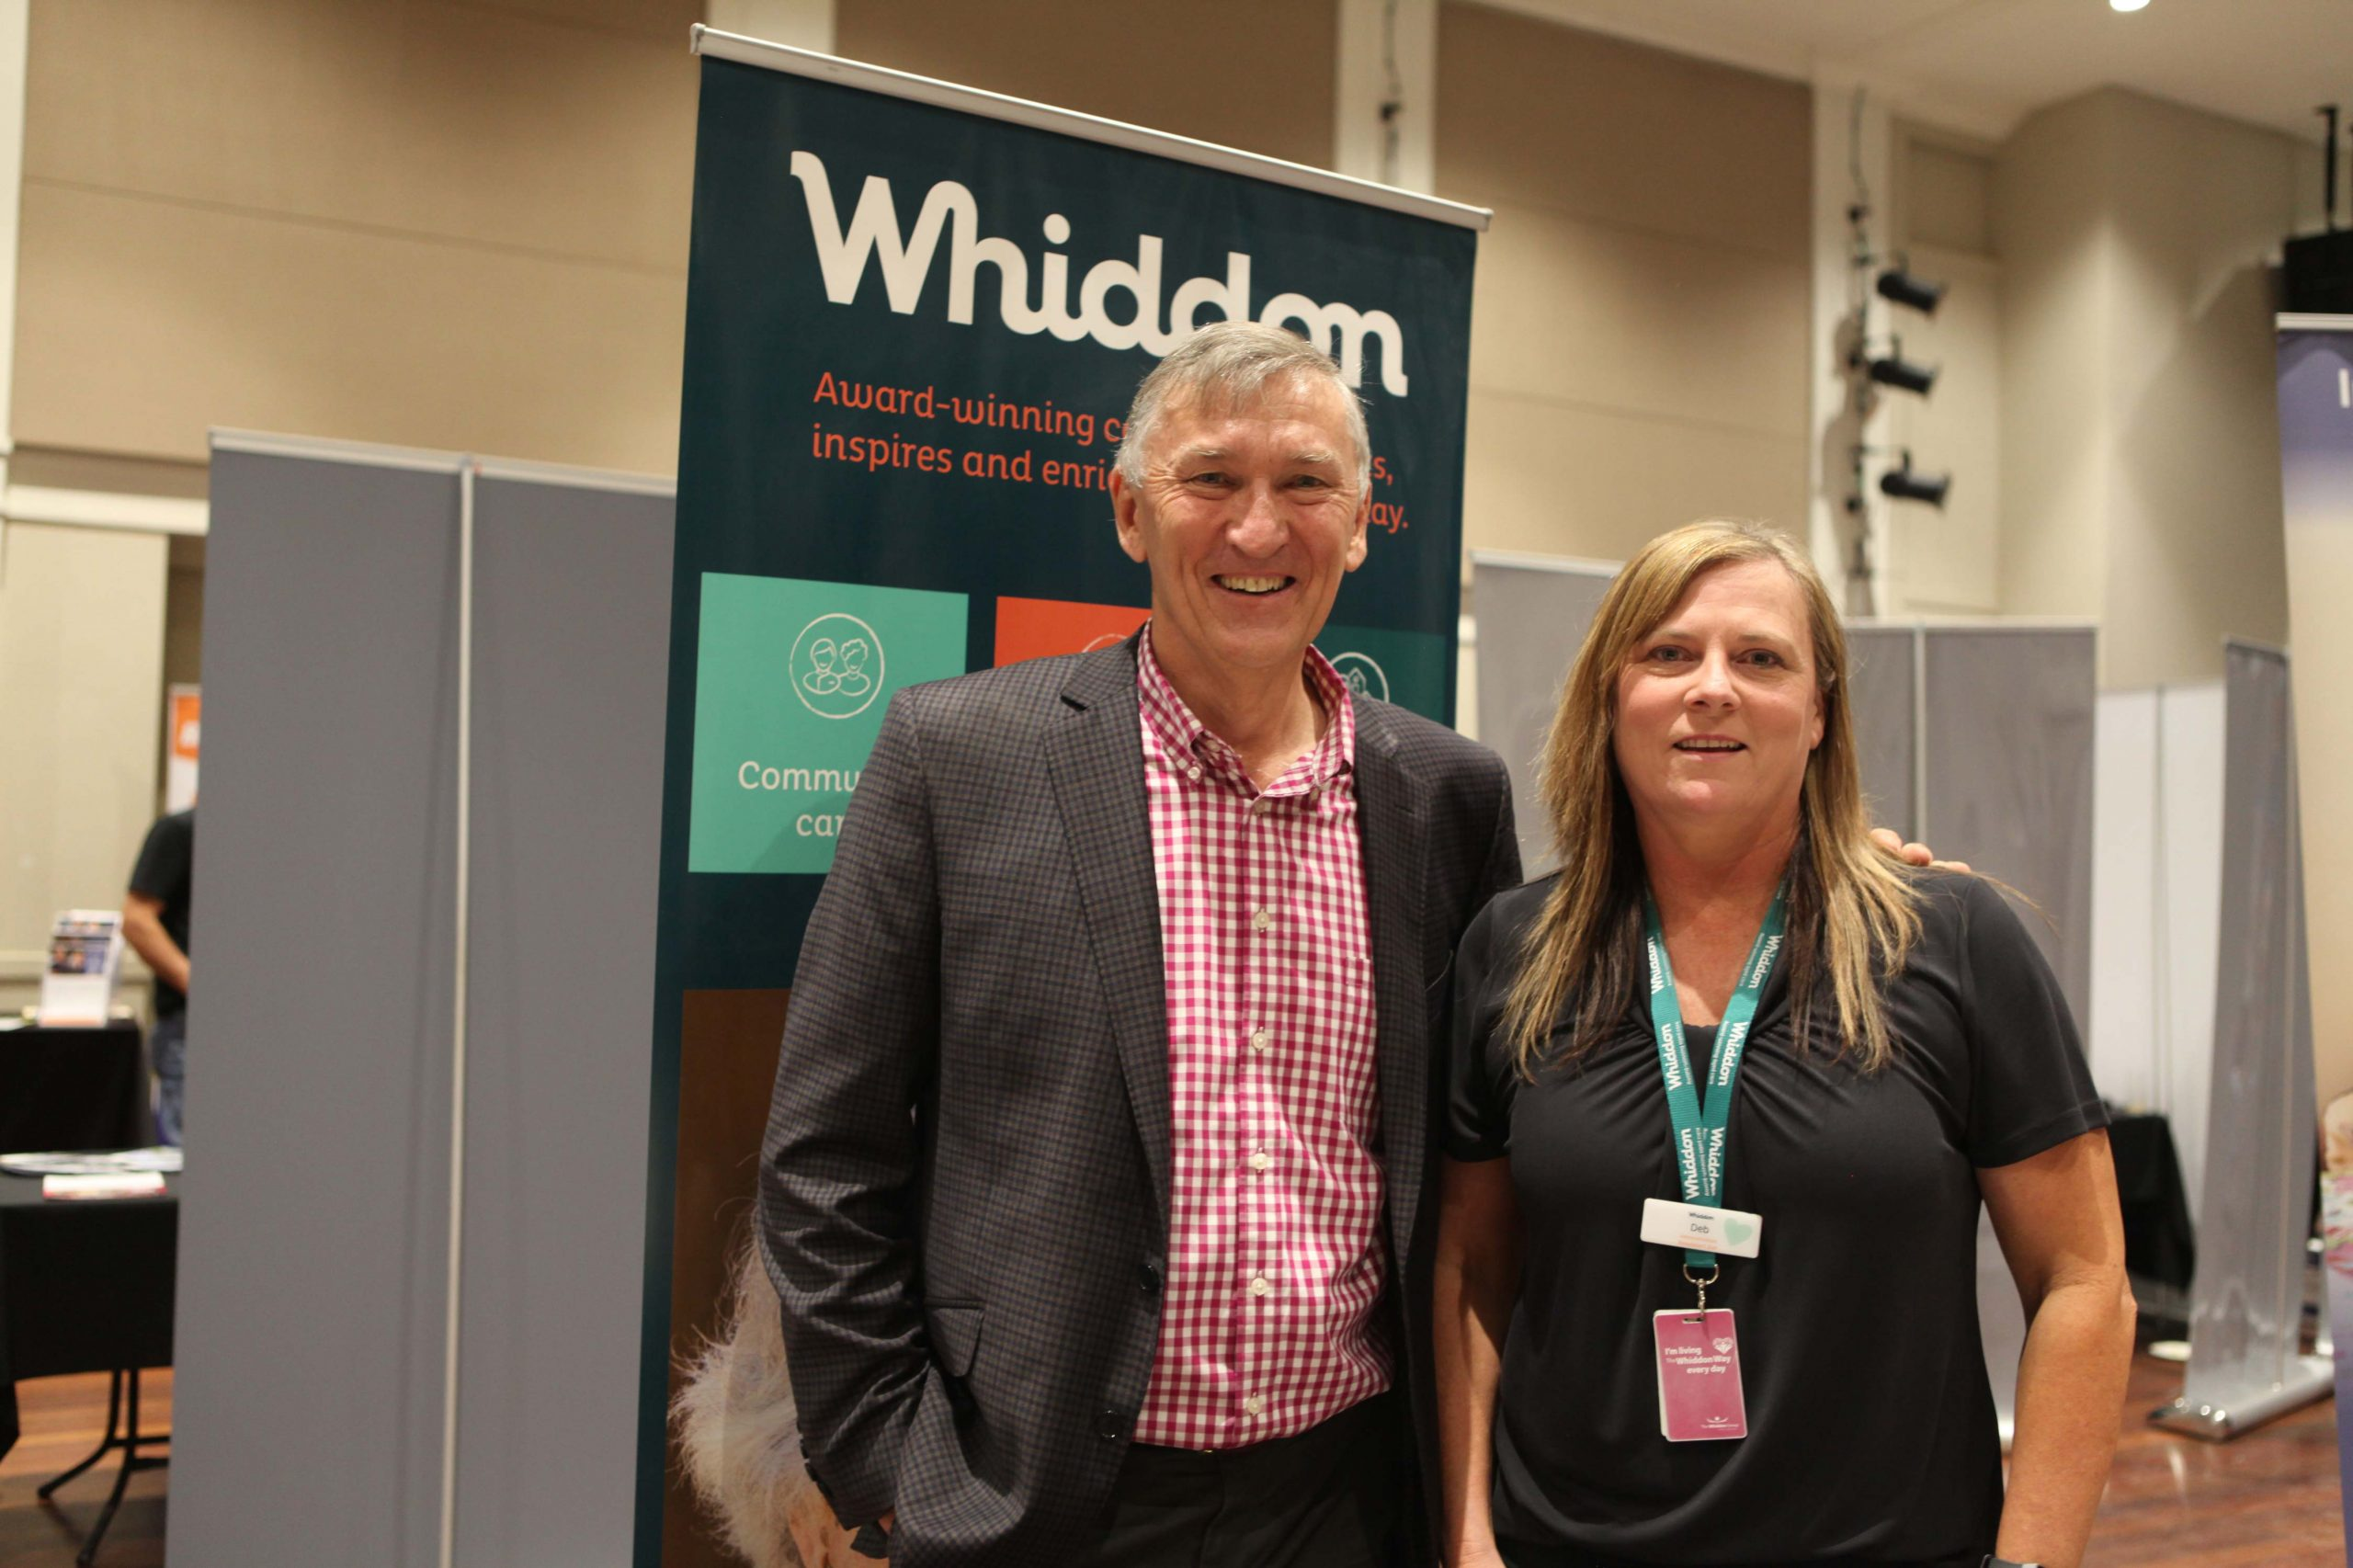 Mayor Greg Christensen with Deb Mair of Whiddon Star.